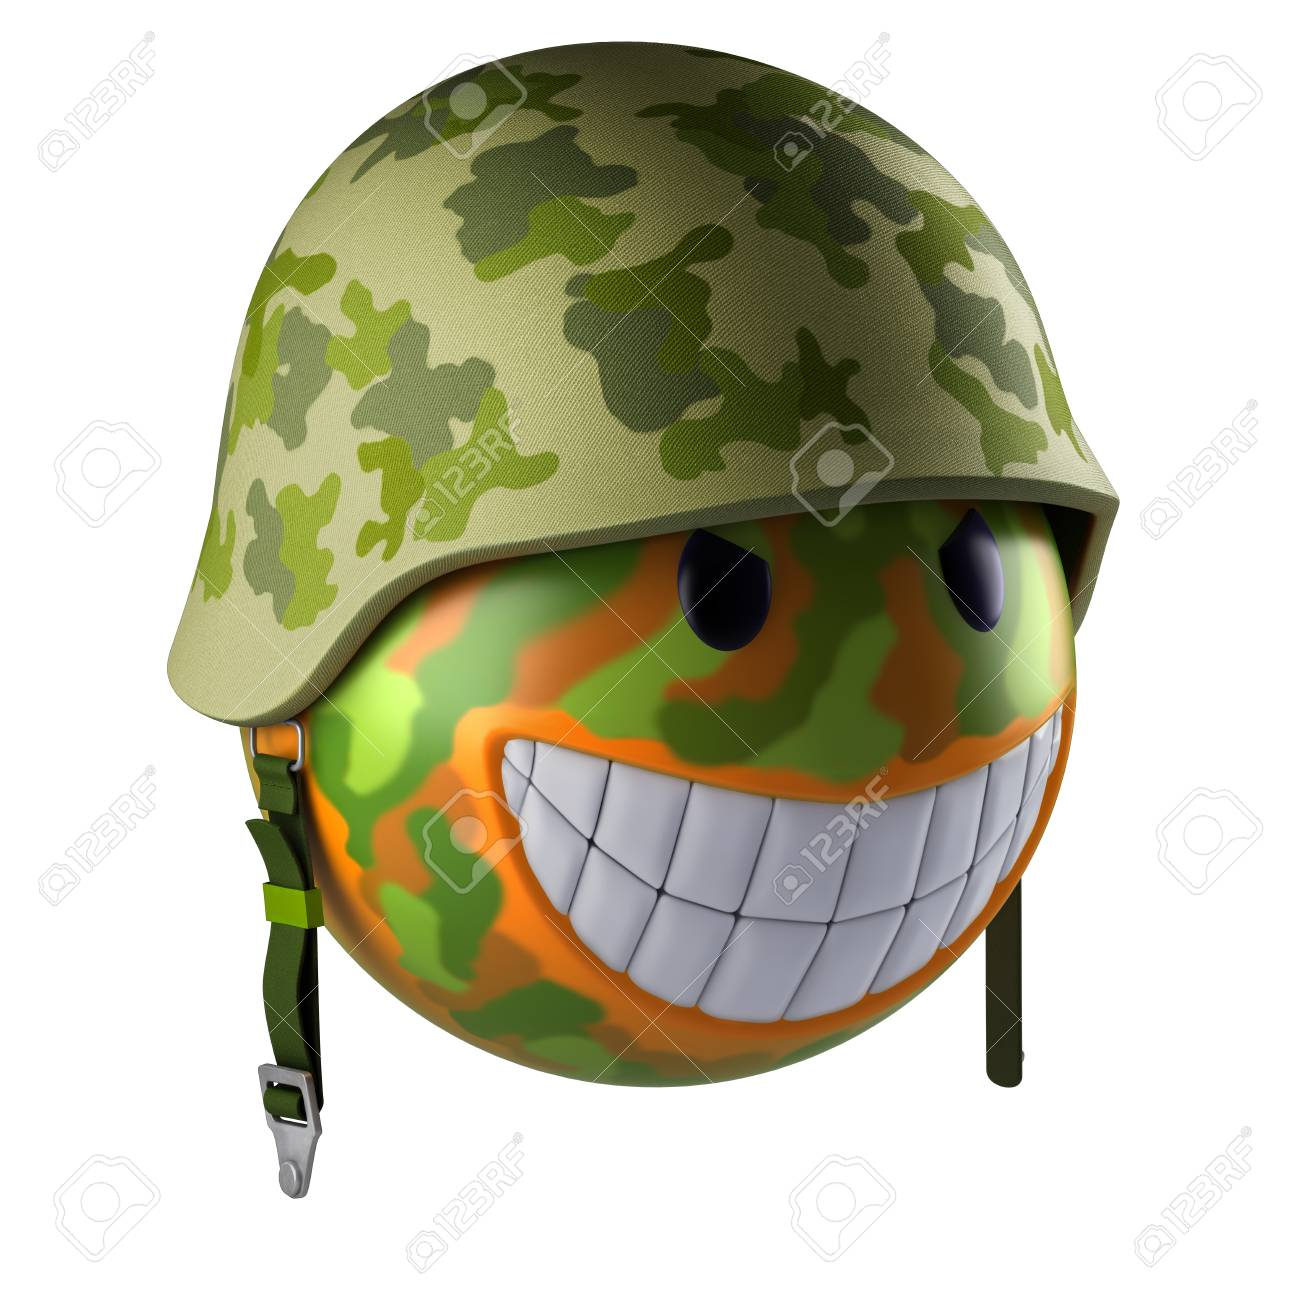 Smiley face sphere with military helmet 3d render